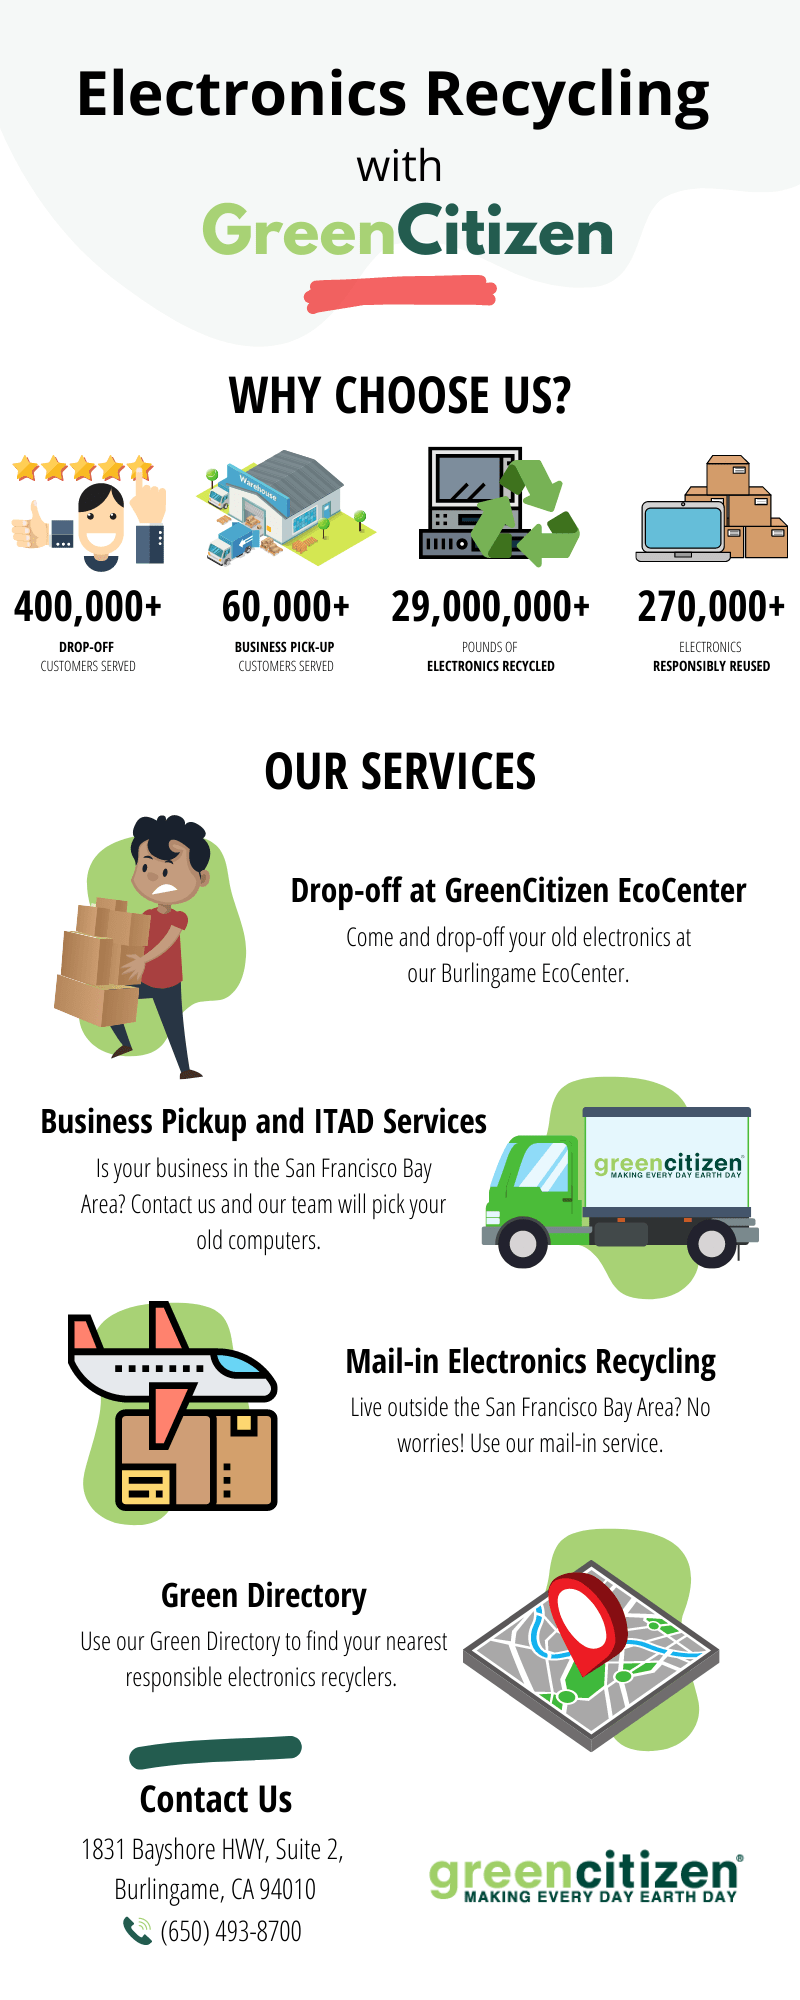 Electronics Recycling with GreenCitizen